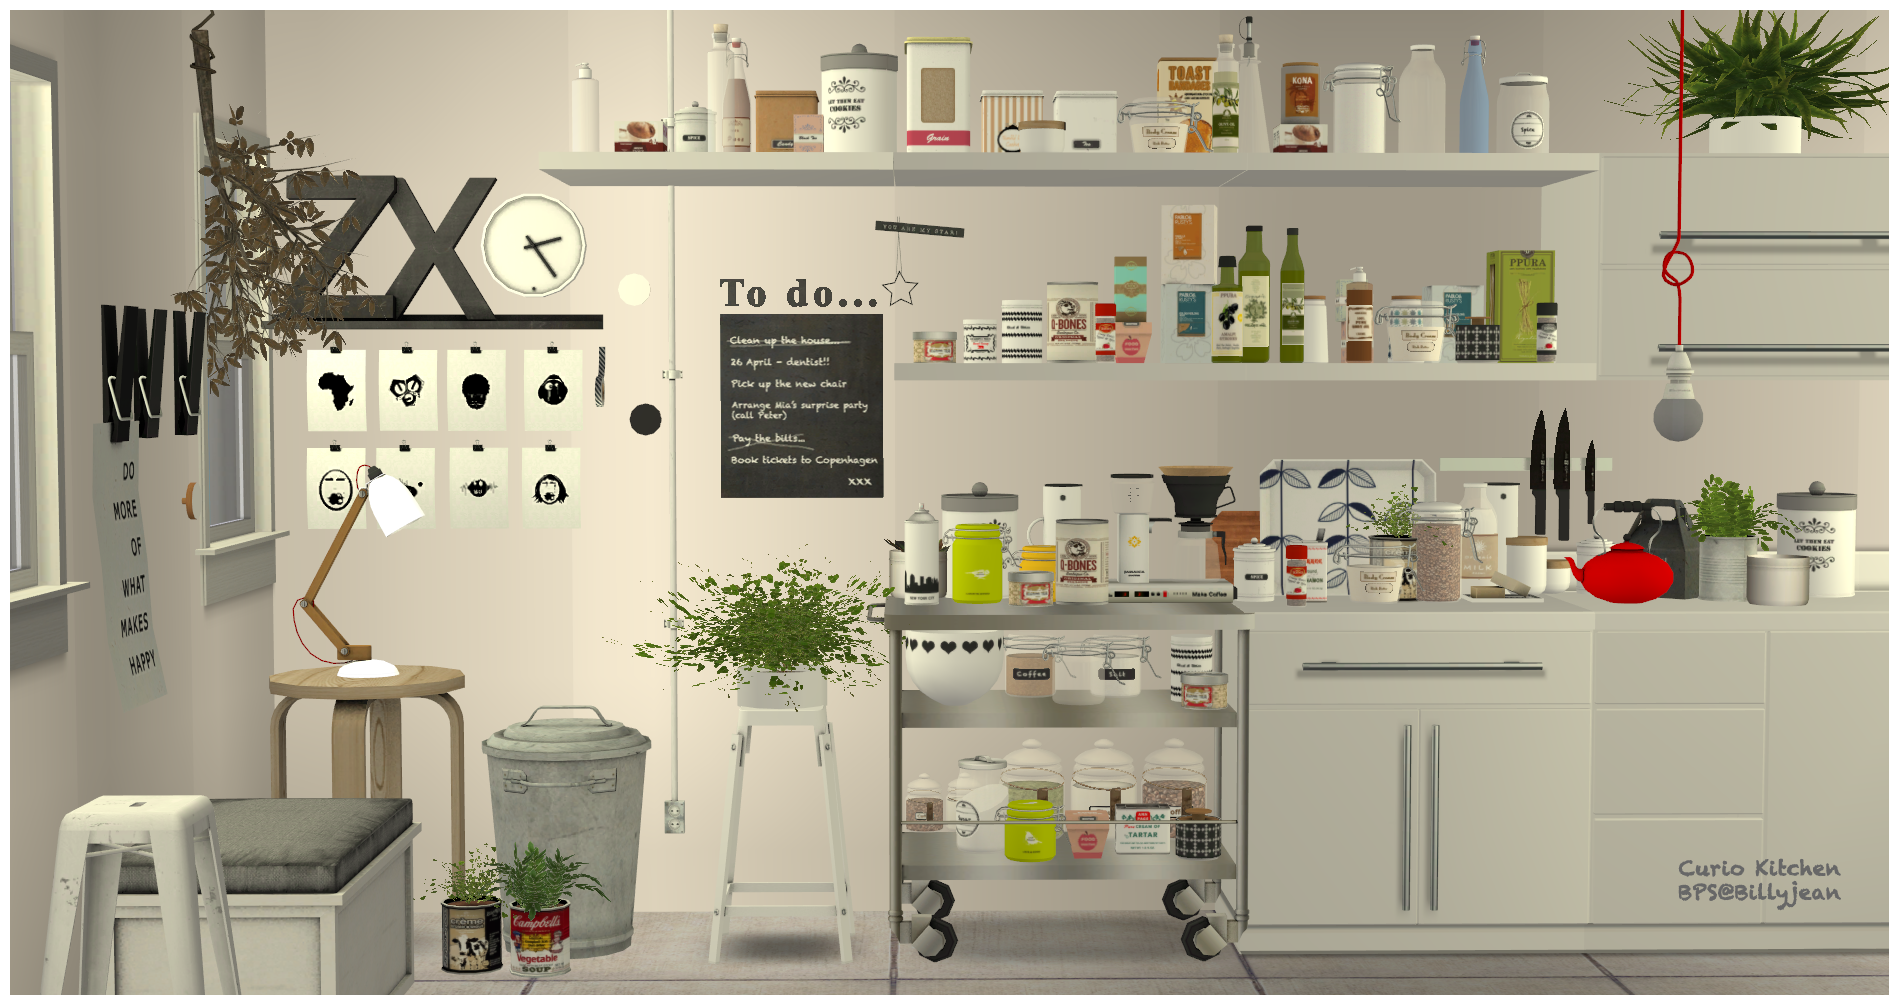 Sims Kitchen Sims 2 Curio Kitchen Set Downloads Bps Community Ts2cc